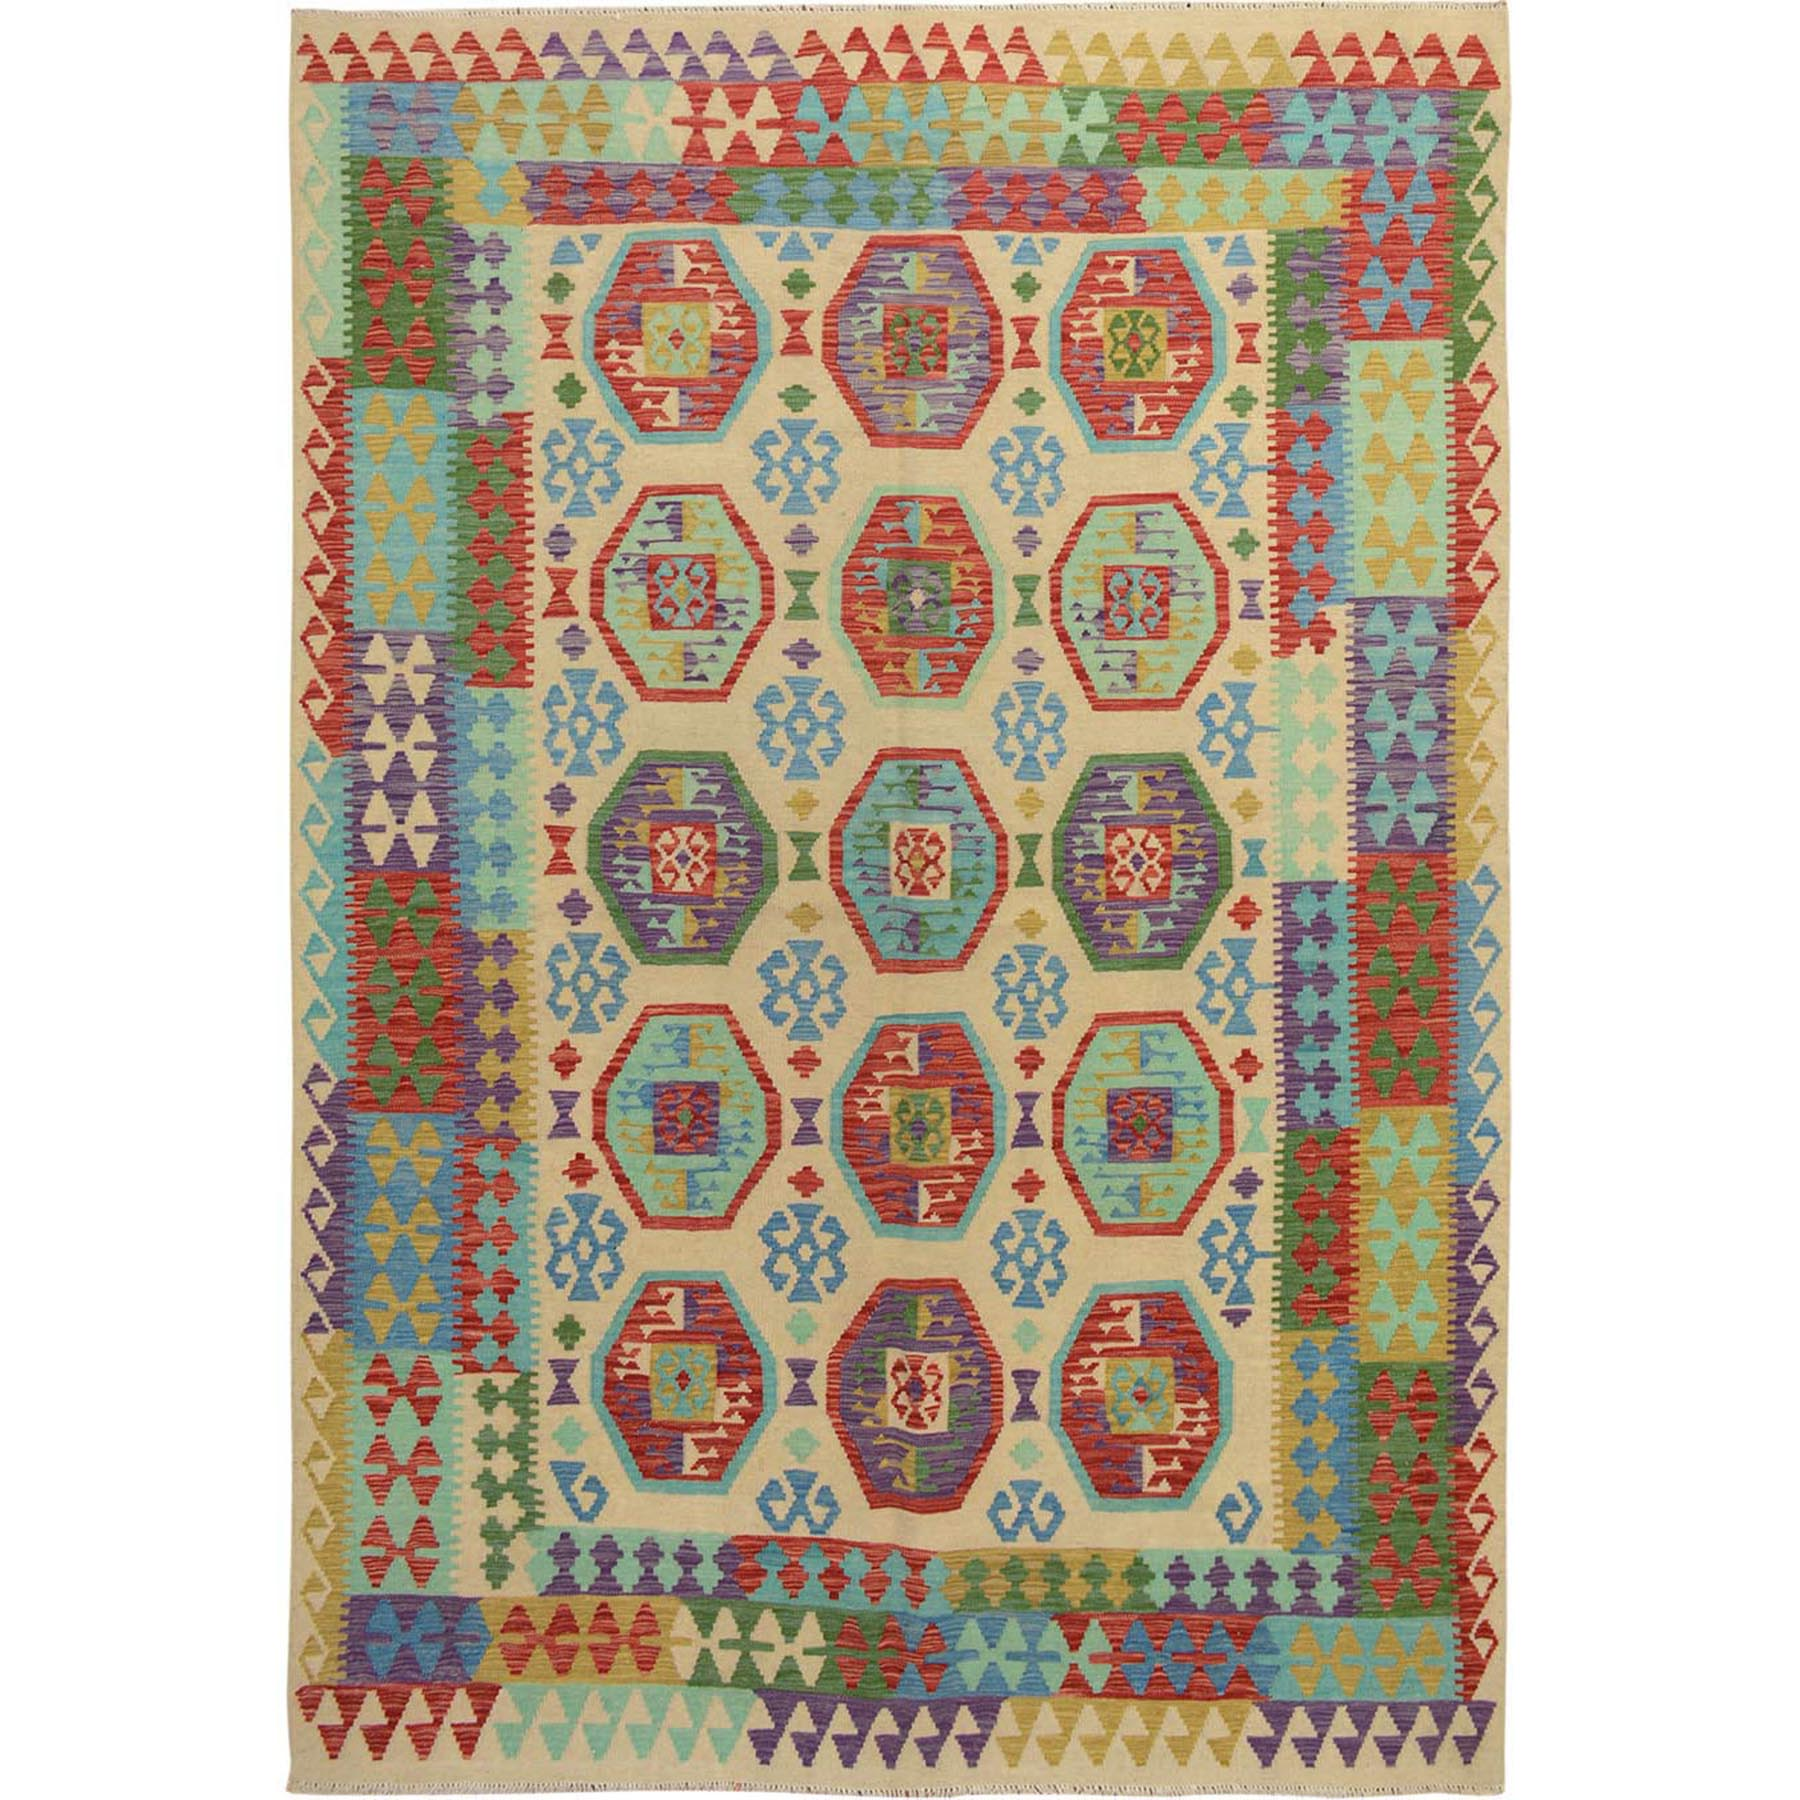 "6'8""x9'8"" Colorful Reversible Flat weave Afghan Kilim Pure Wool Hand Woven Oriental Rug"